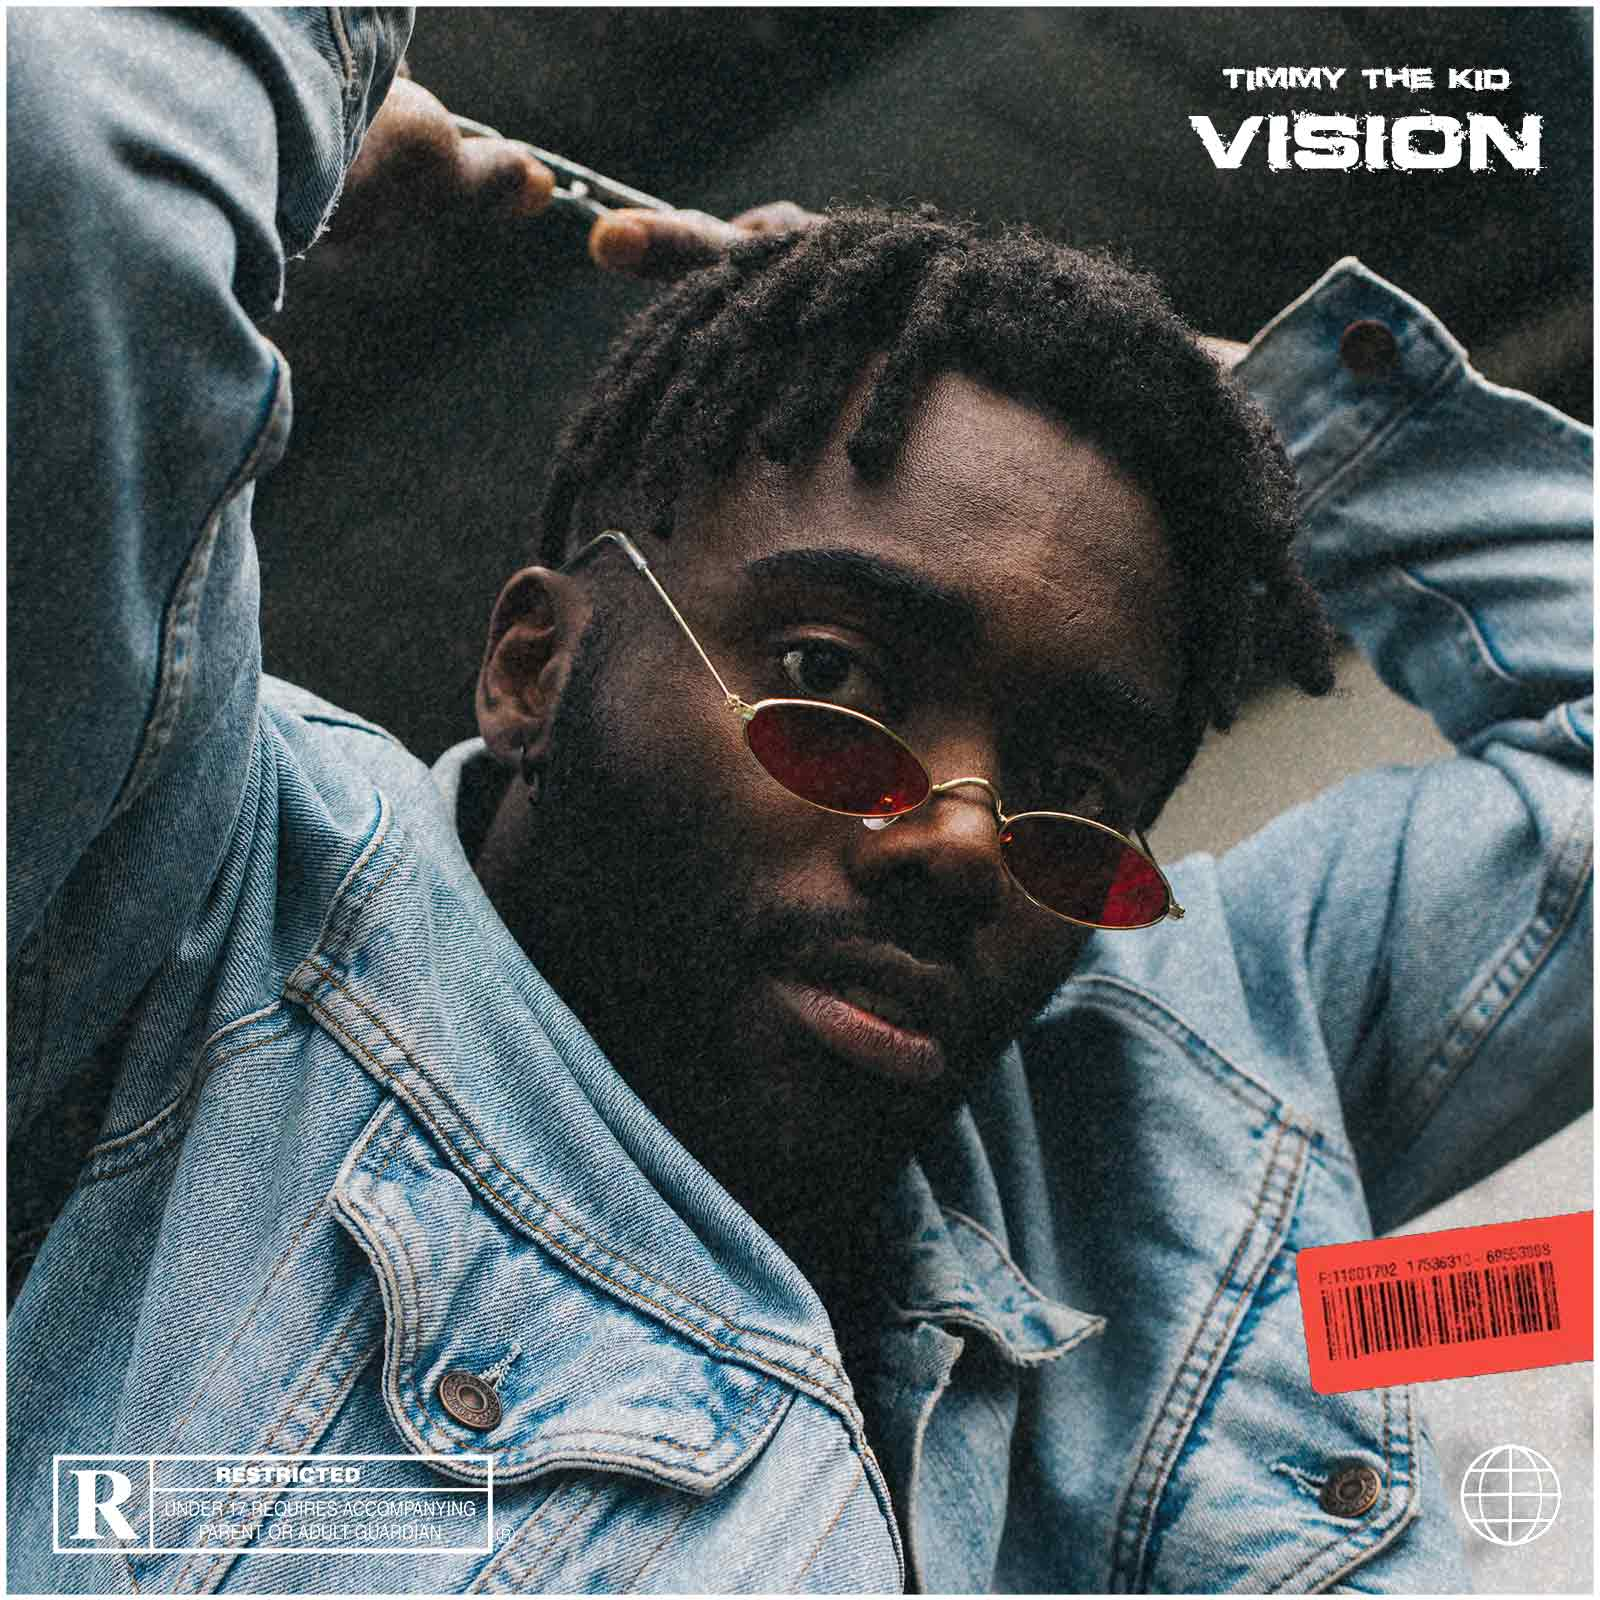 Upcoming: Timmy the Kid - VISION EP